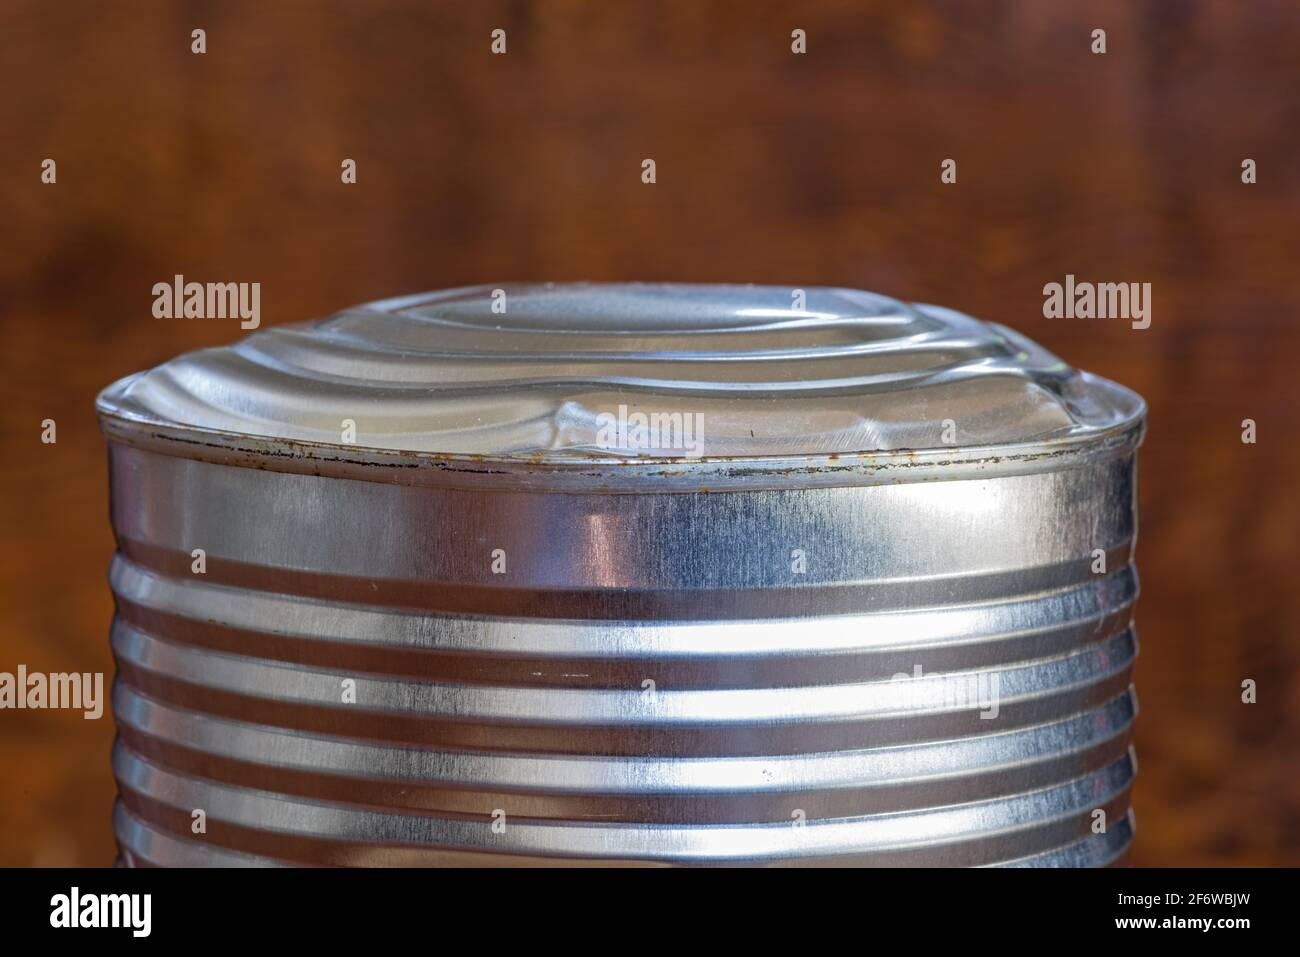 bulging old food can end indicating spoiled contents Stock Photo